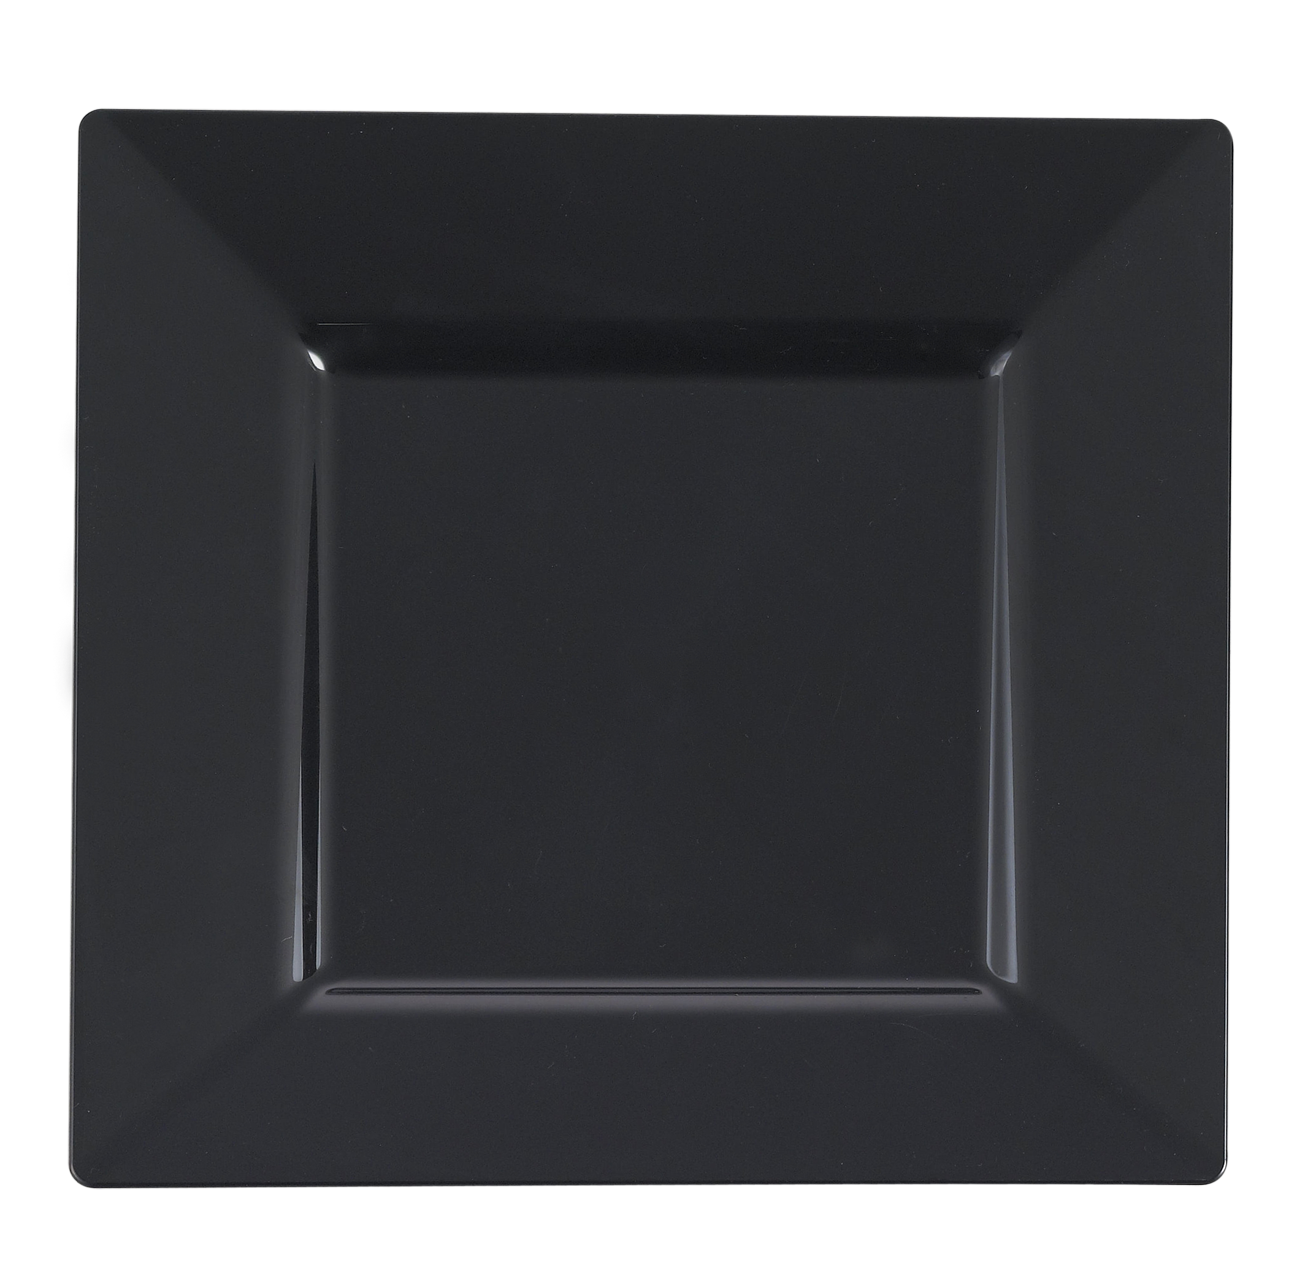 Image 2 of 2  sc 1 st  Walmart & Kaya Collection - Square Black Disposable Plastic Dinnerware Party ...